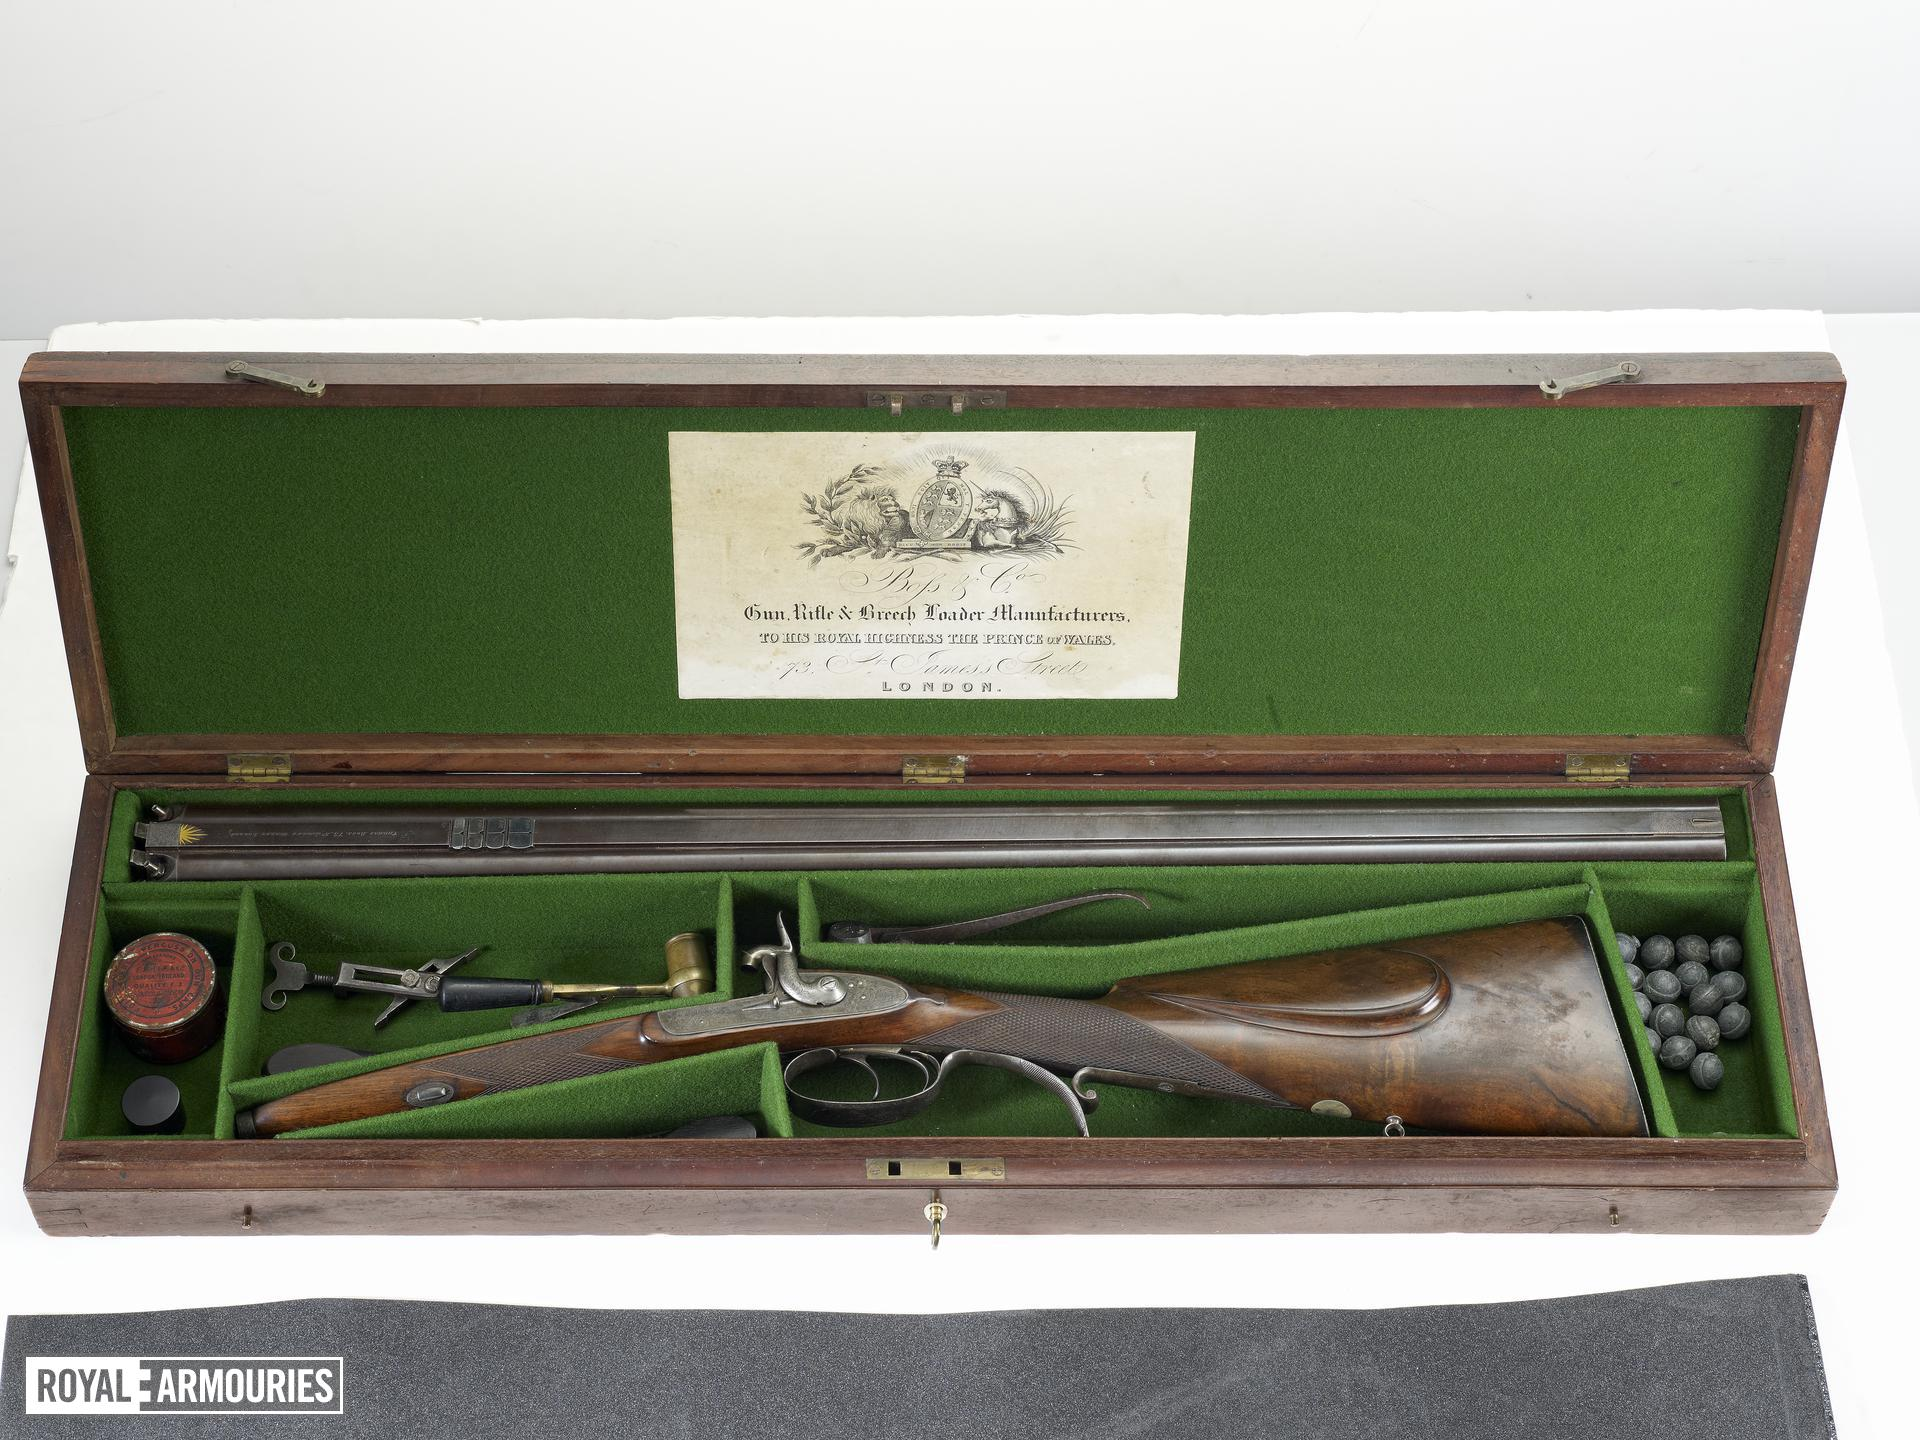 Percussion double-barrelled rifle - By Thomas Boss